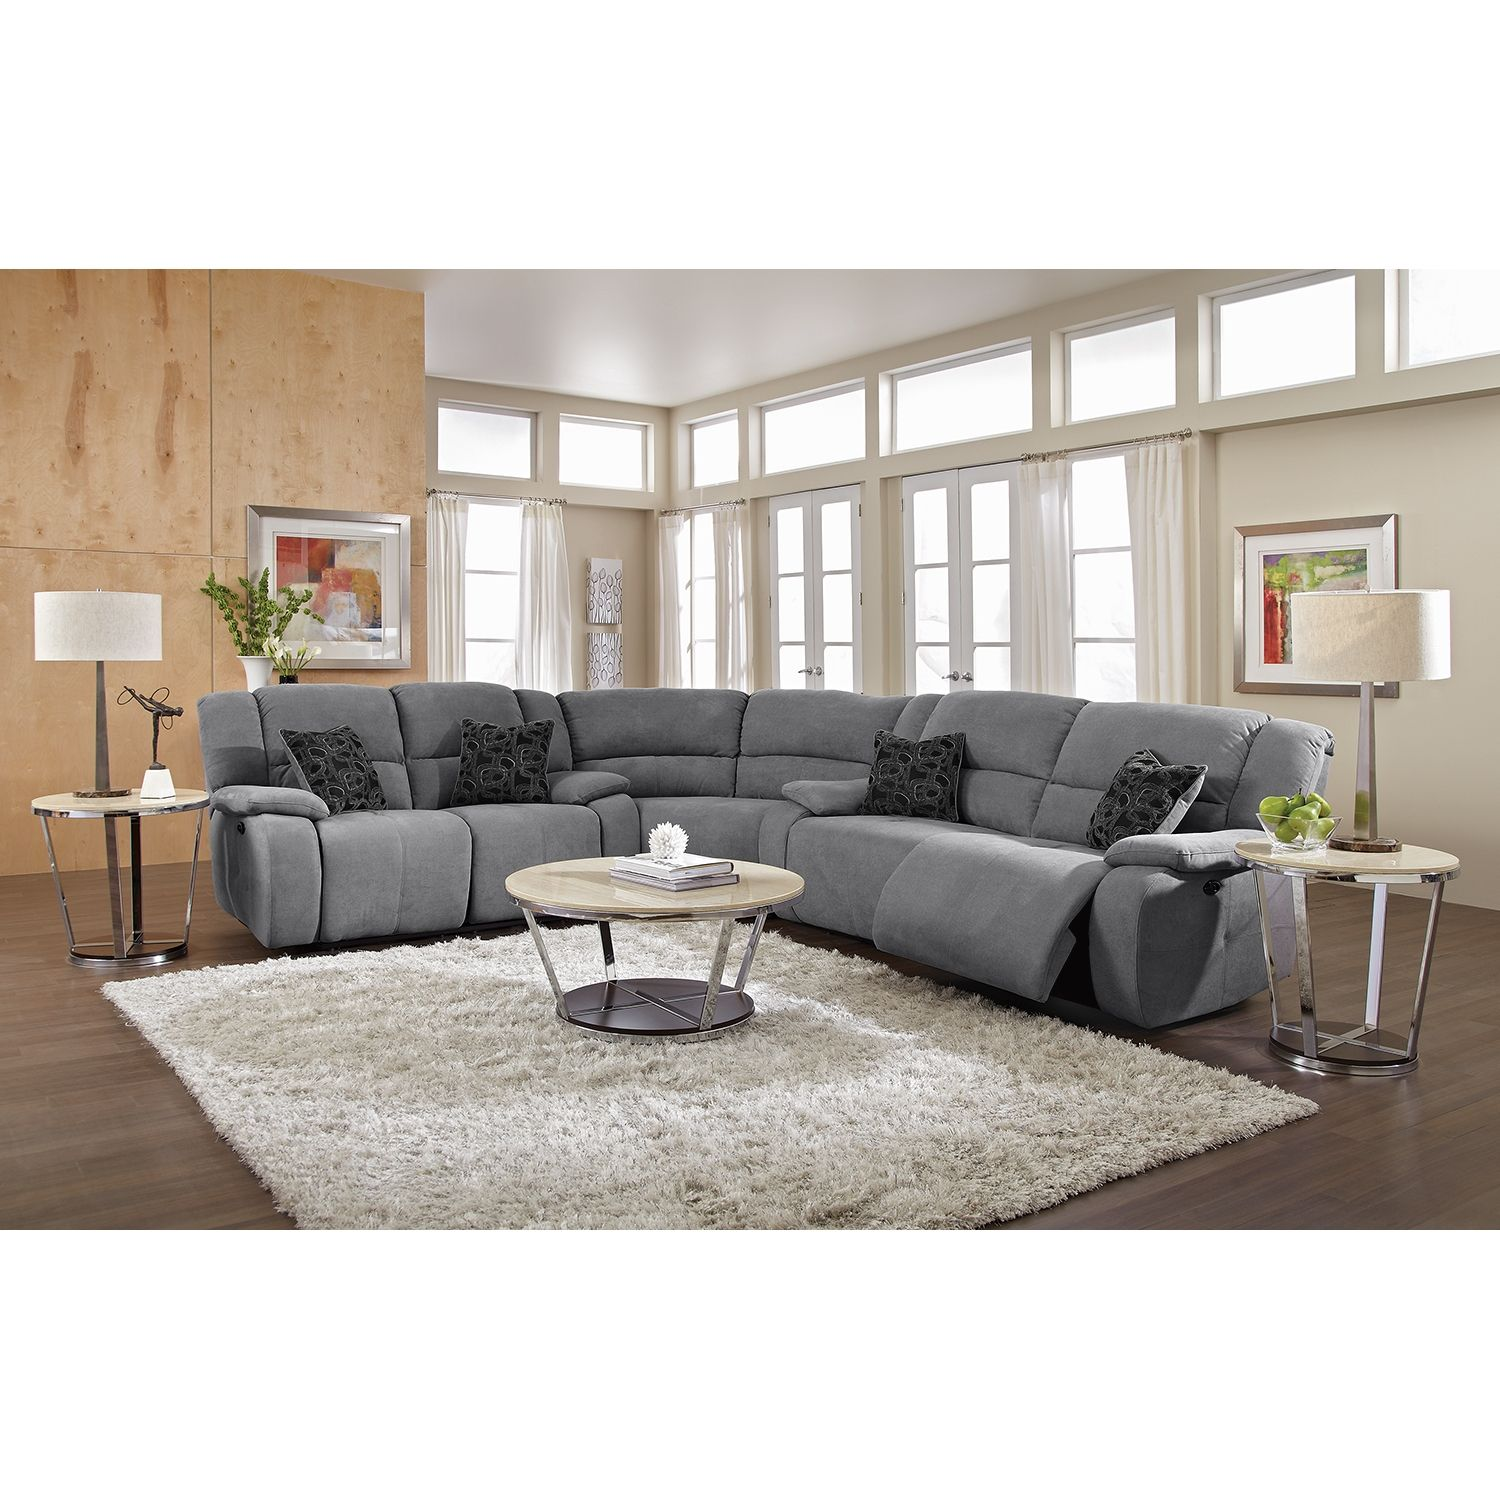 Love this couch gray is awesome future living room for Living room sectionals